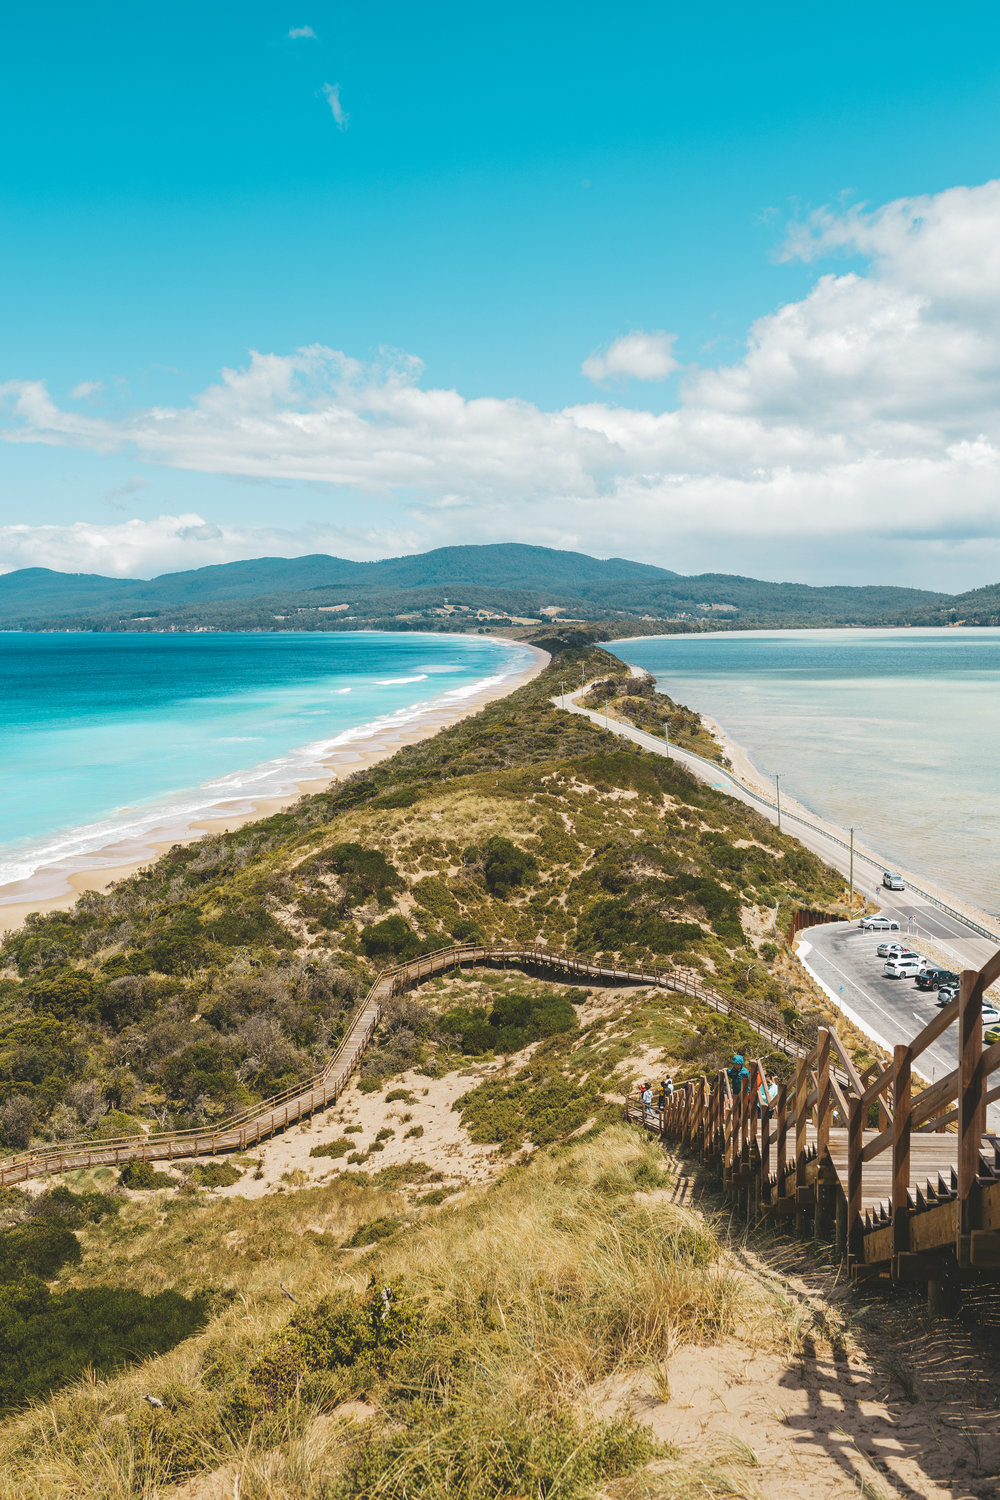 The neck of Bruny Island